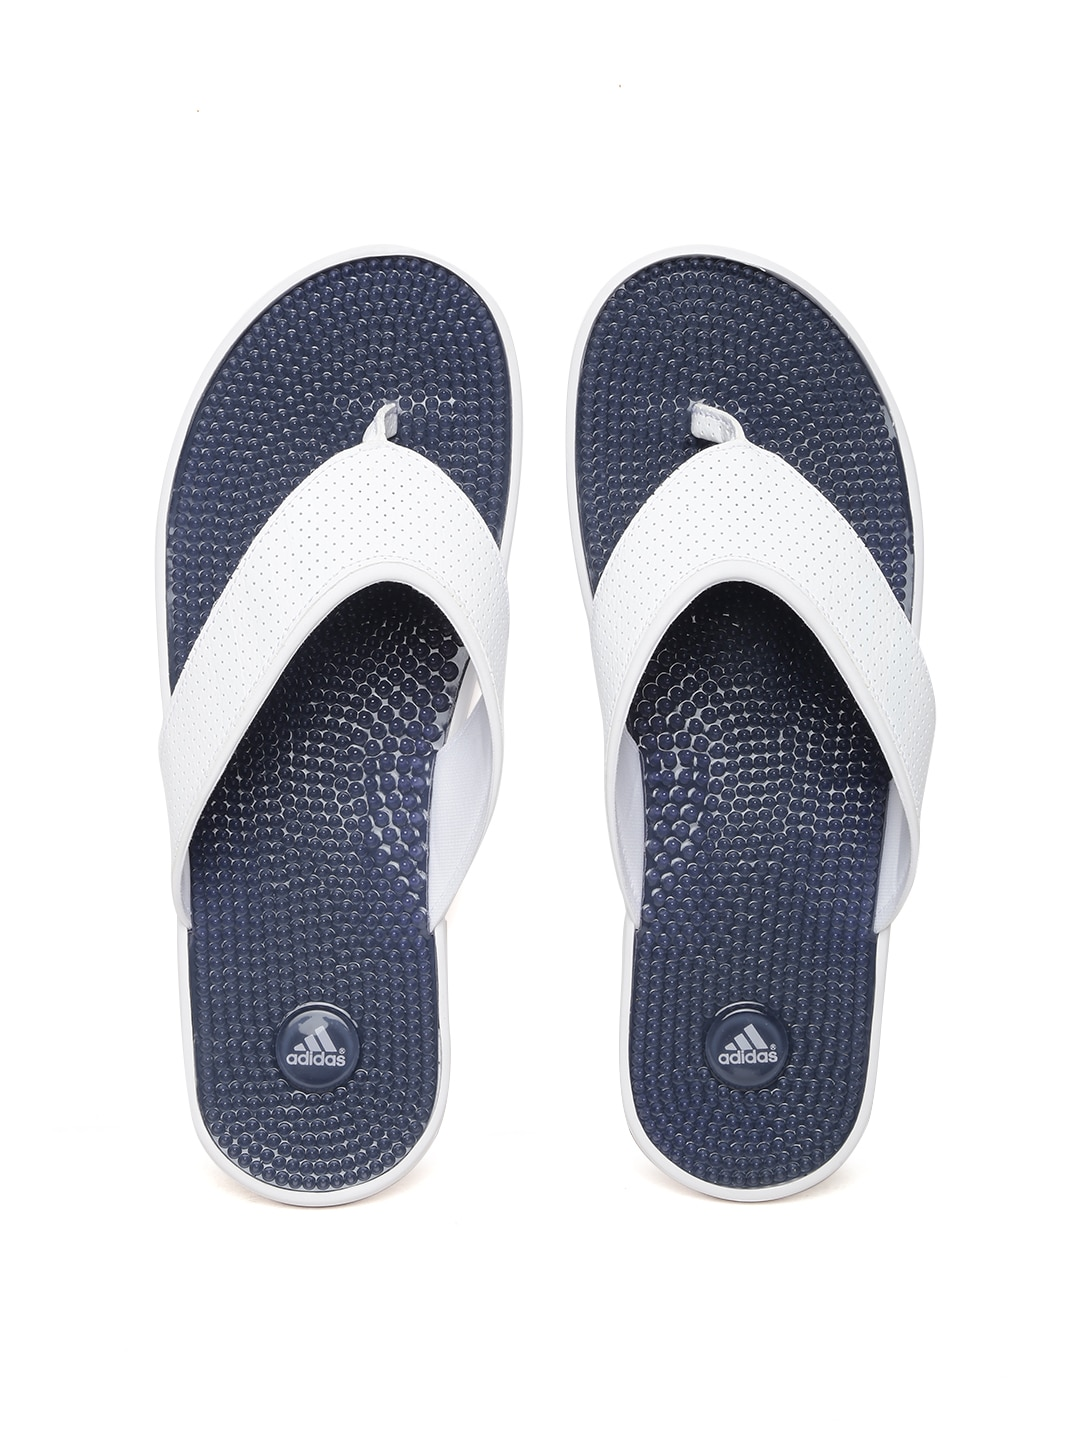 825cbdc8cb9f8 Adidas s78008 Men White And Navy Adissage Thong Gr Flip Flops- Price in  India